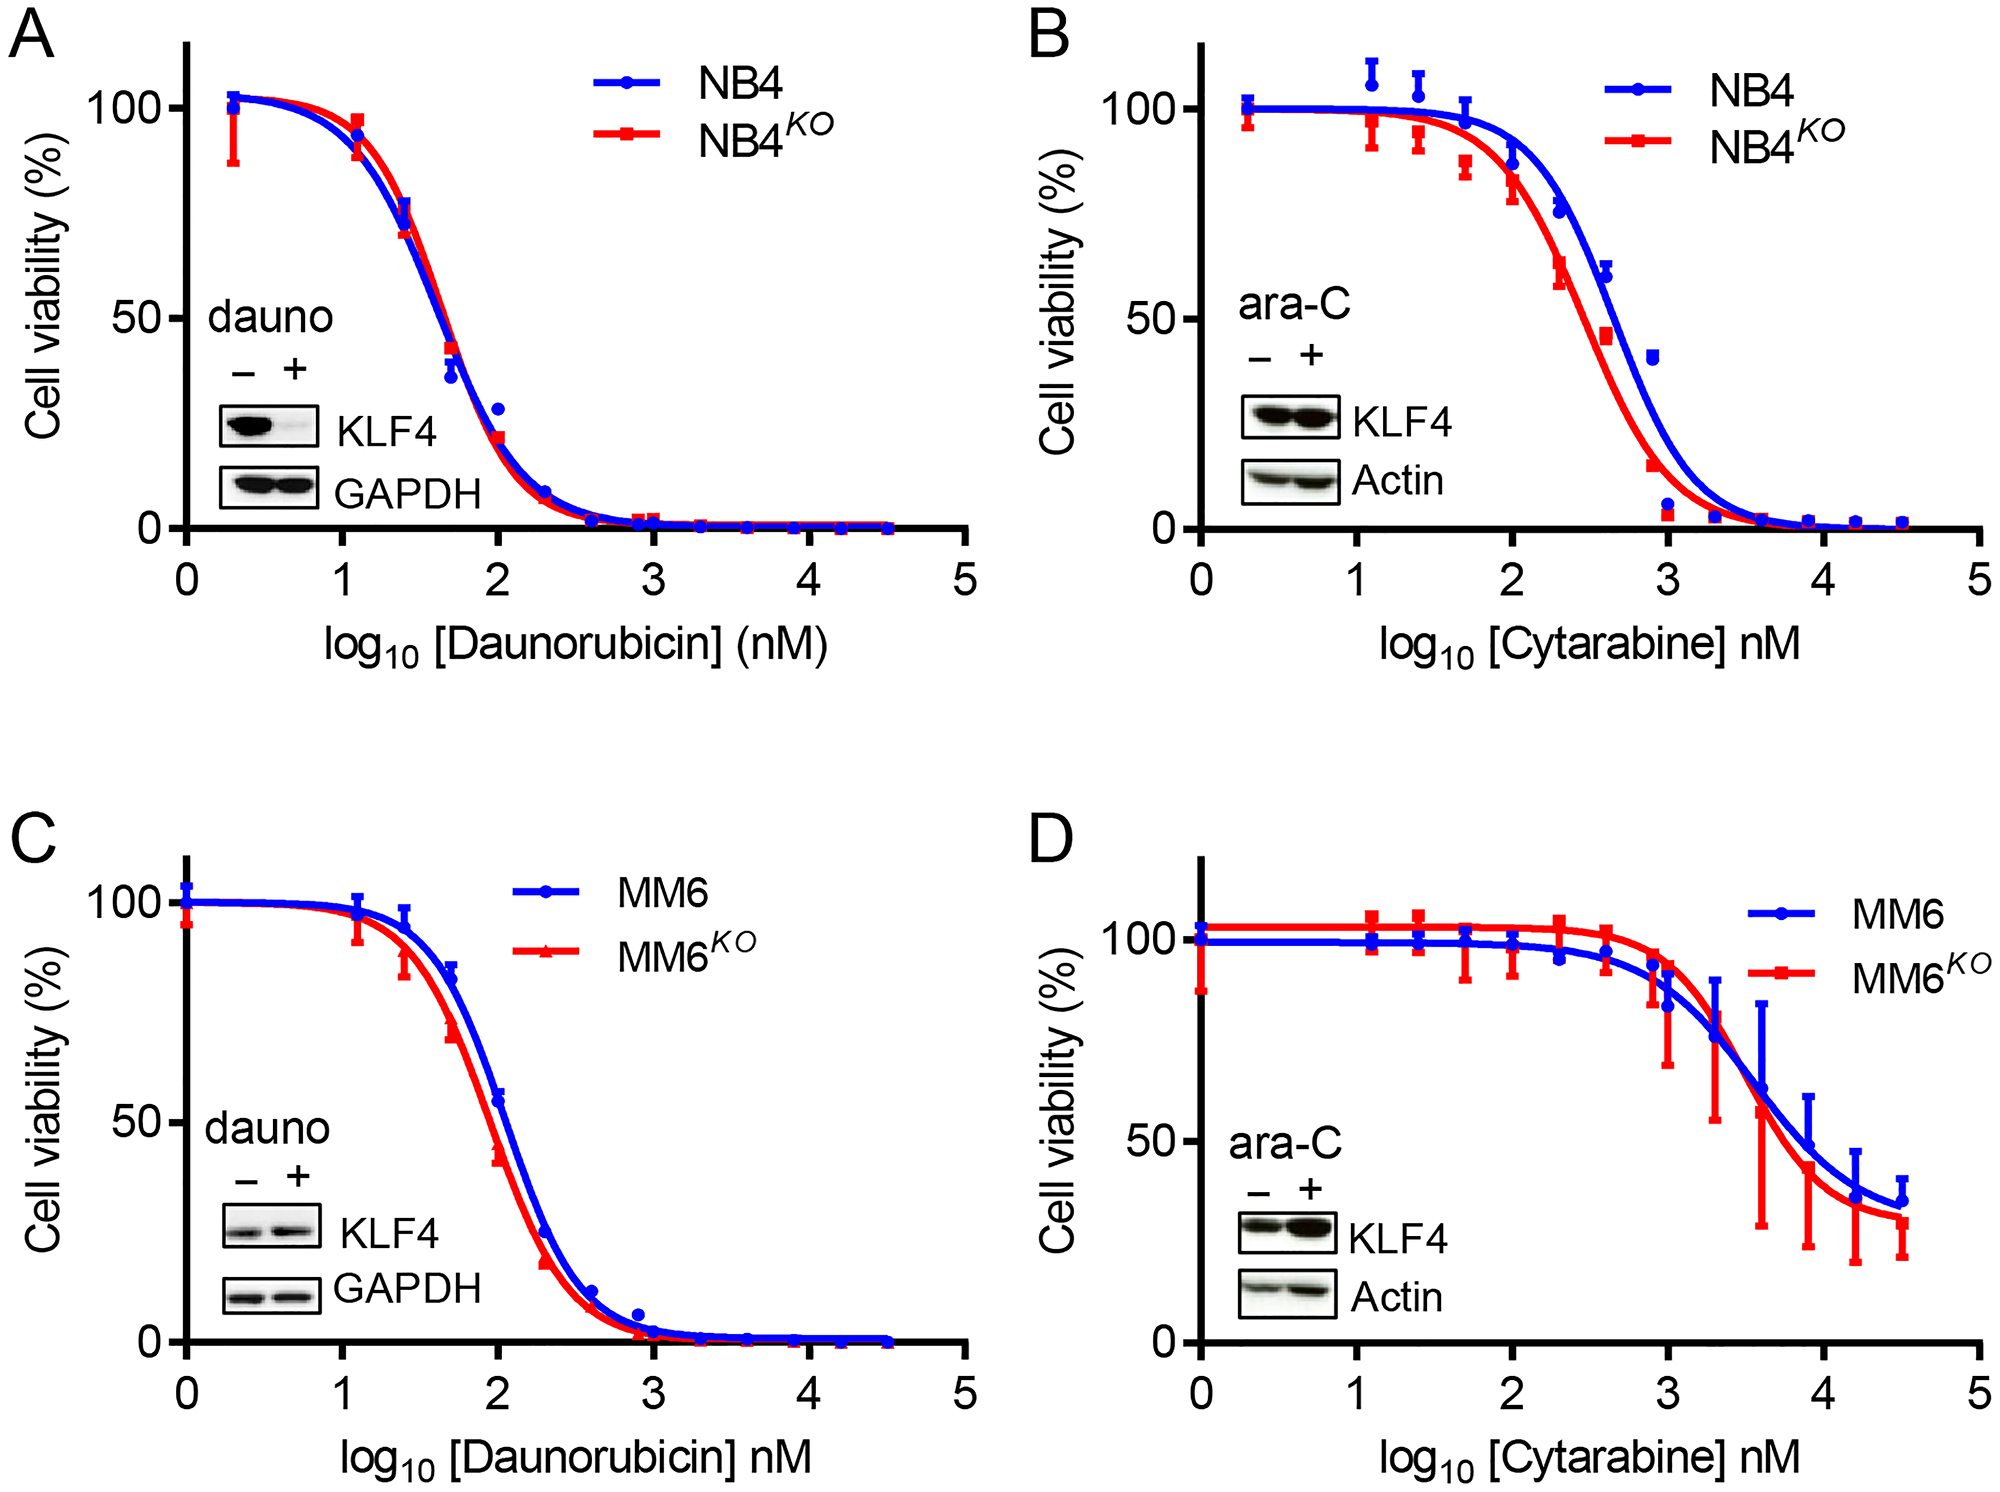 KLF4 deletion does not alter sensitivity to standard chemotherapeutic drugs.